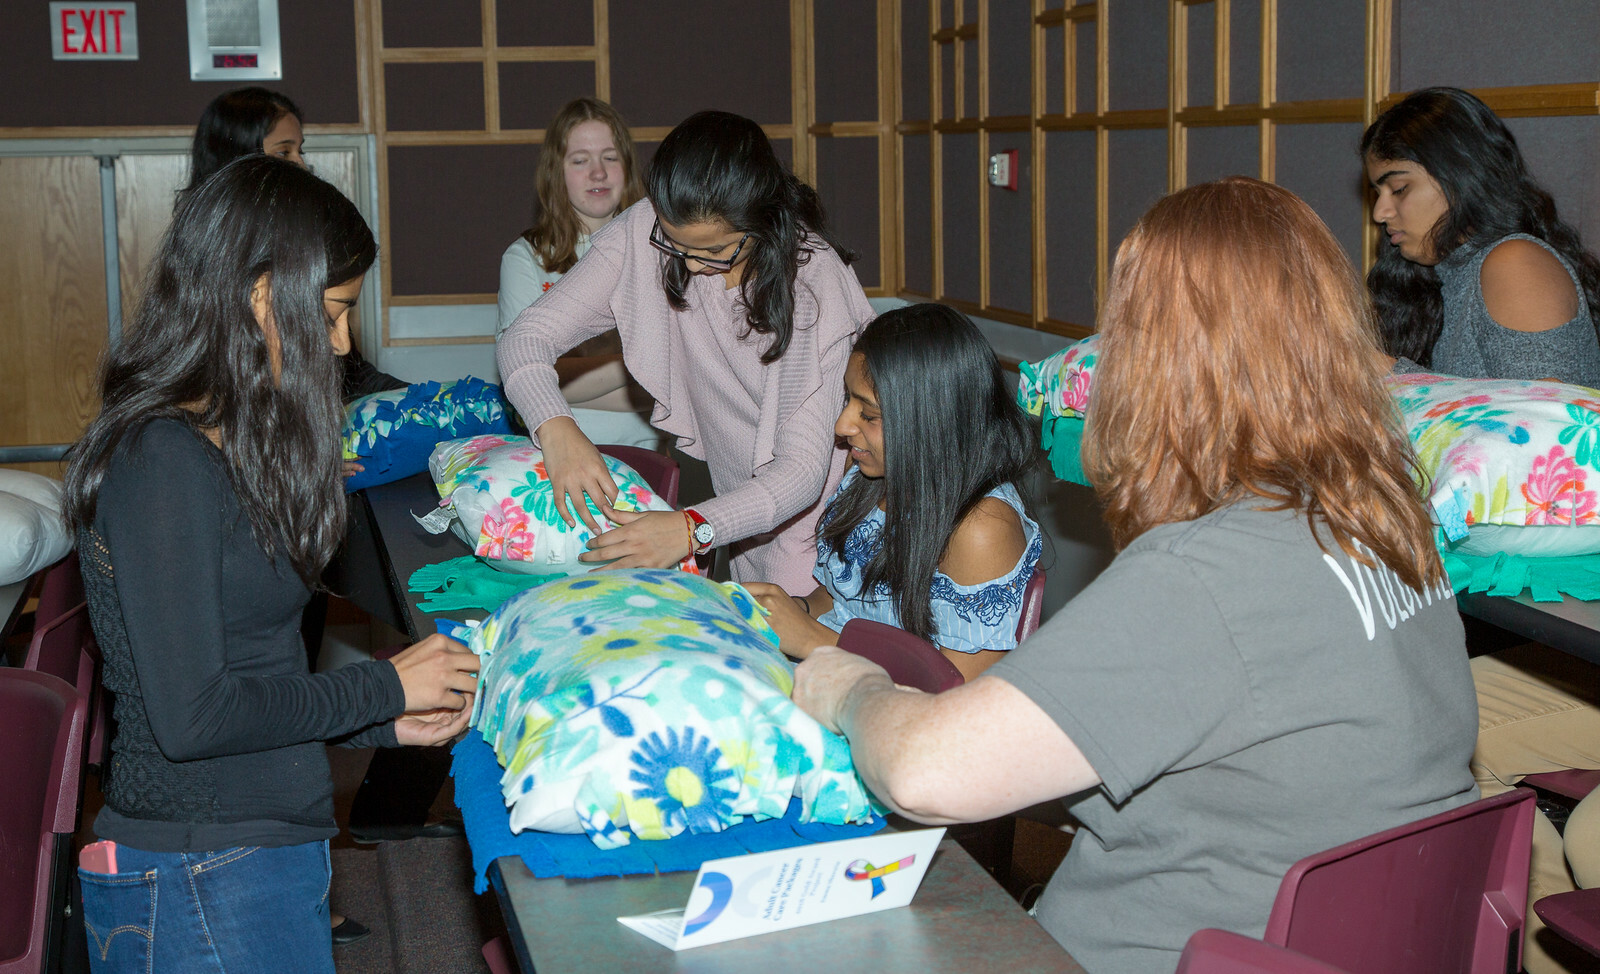 Neuqua Valley High School Interact students assemble pillows for the Rush Copley Cancer Care Institu